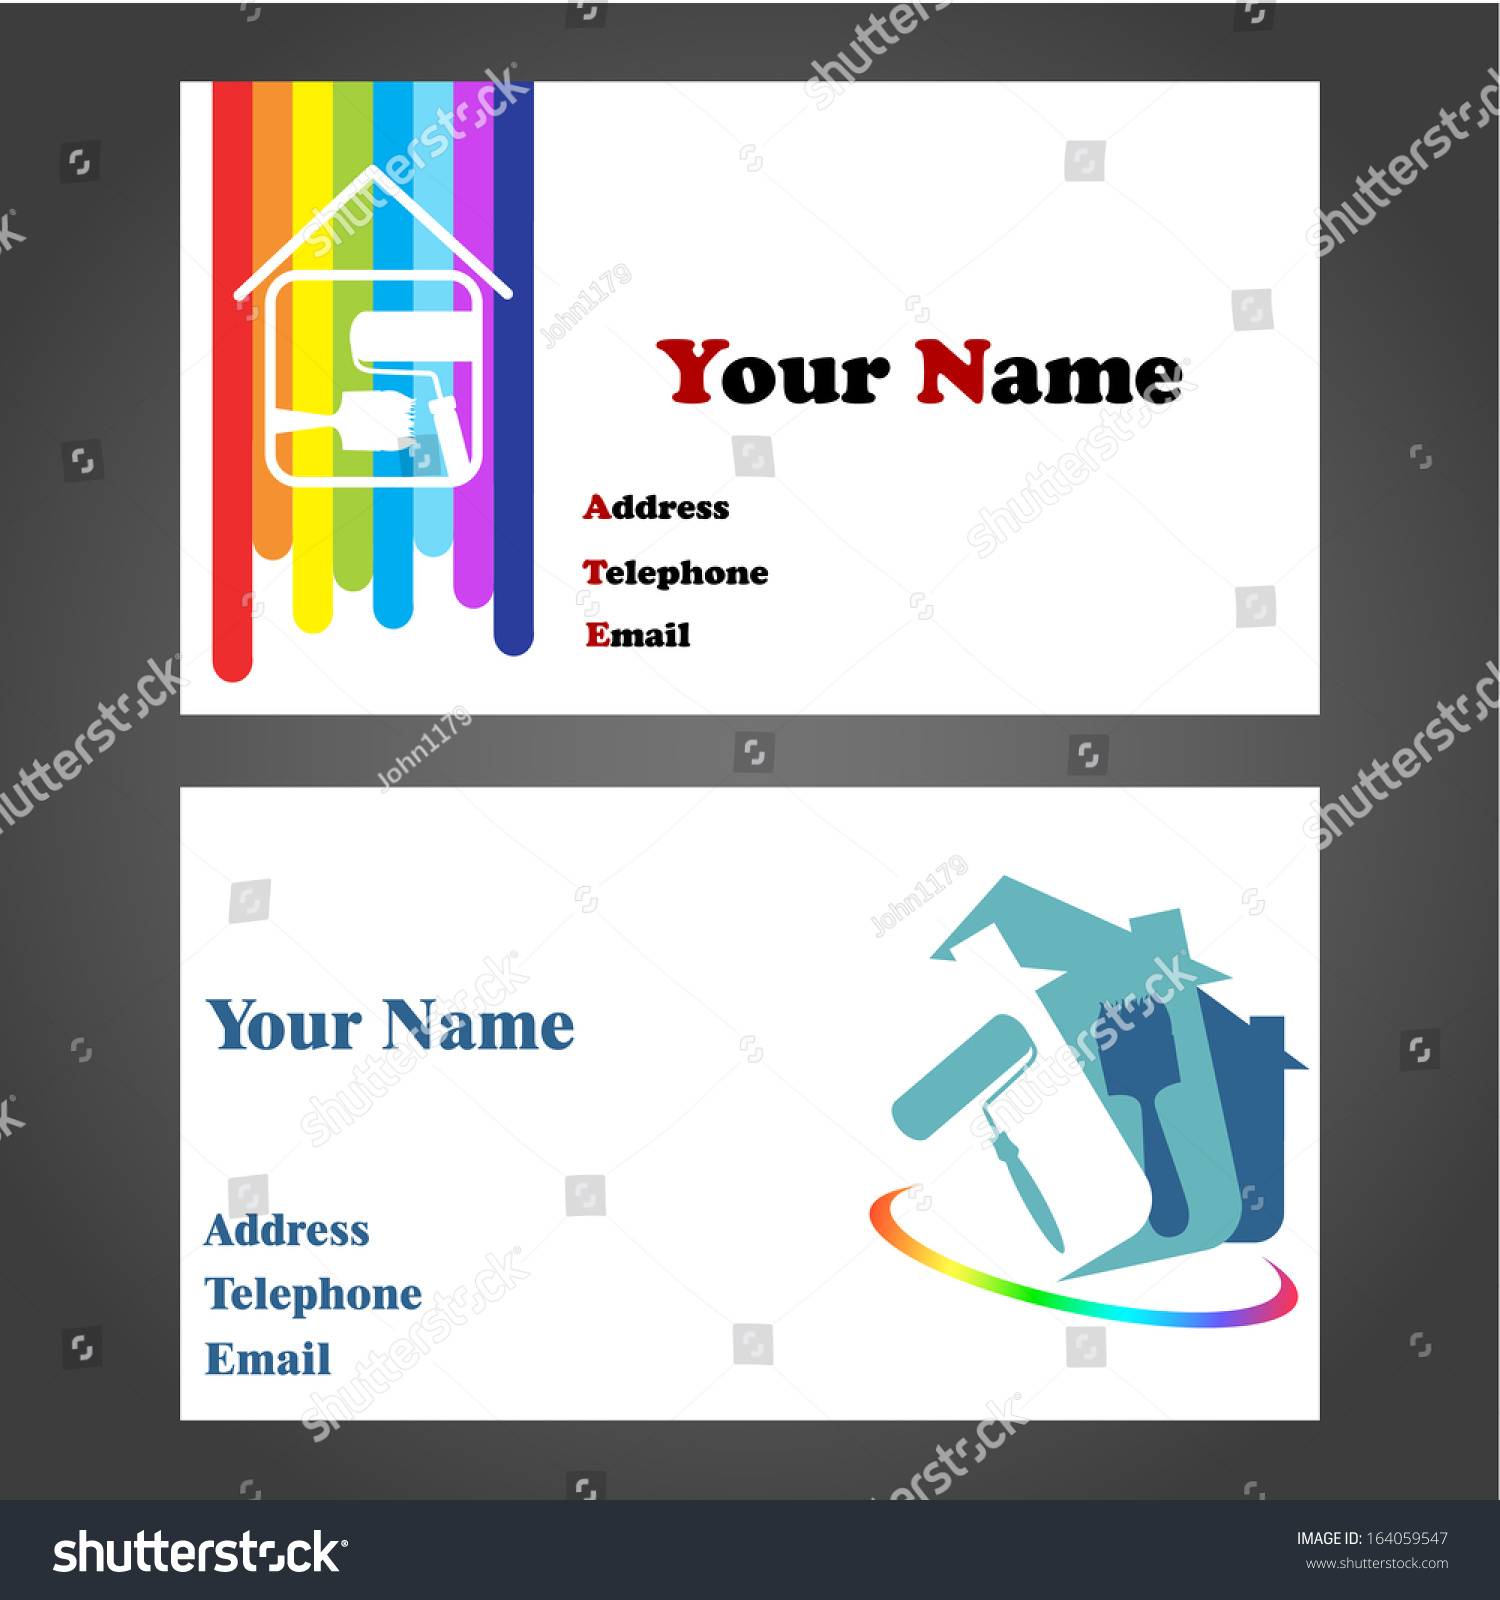 Painter Decorator Sign Stock Vector: Business Card Designs For Painters And Decorators Stock